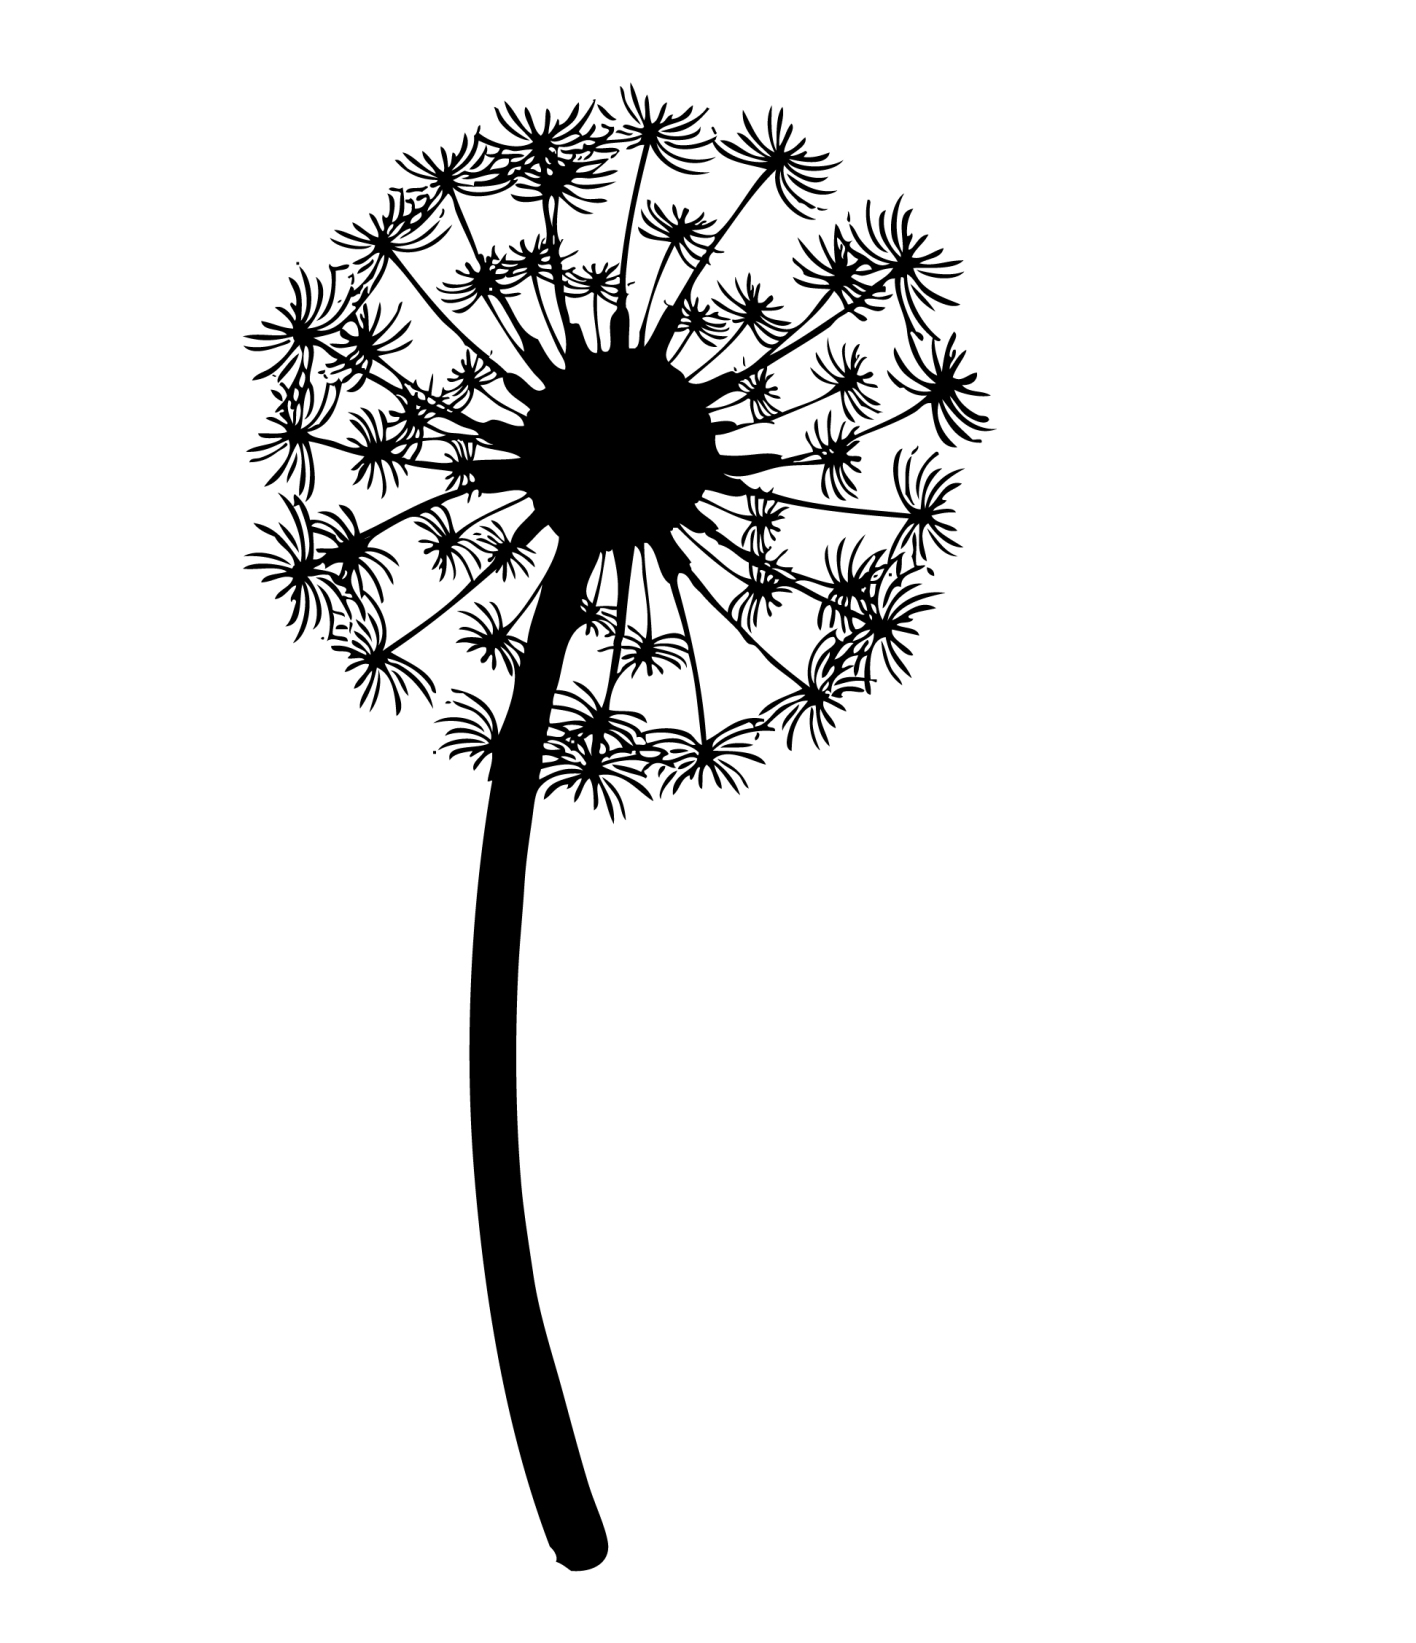 Blowing Dandelion Drawing At Getdrawings Free For Personal Use